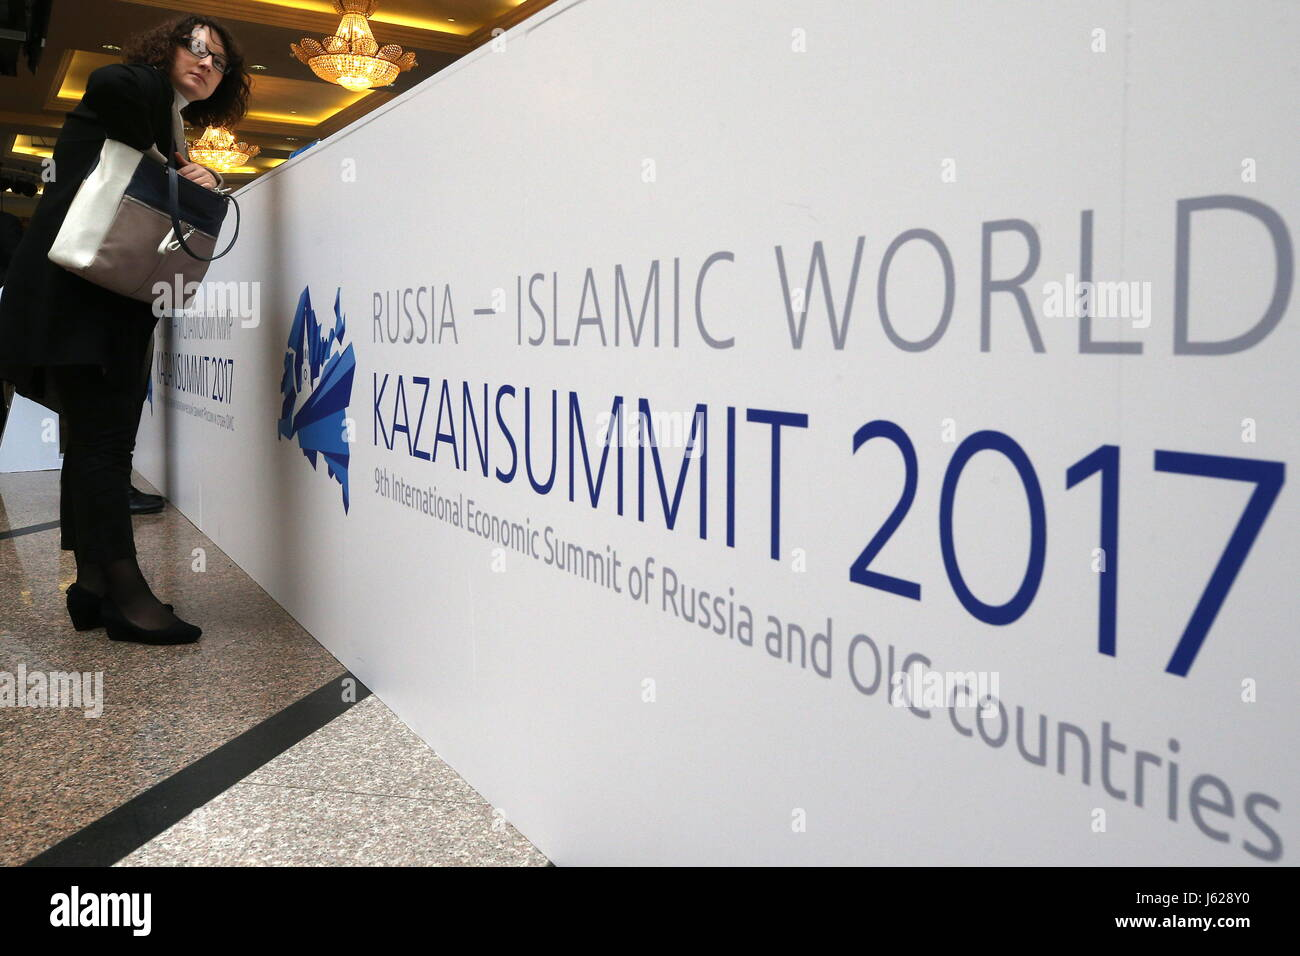 Kazan, Russia. 19th May, 2017. A woman seen at a reception desk at the 9th International Economic Summit titled - Stock Image